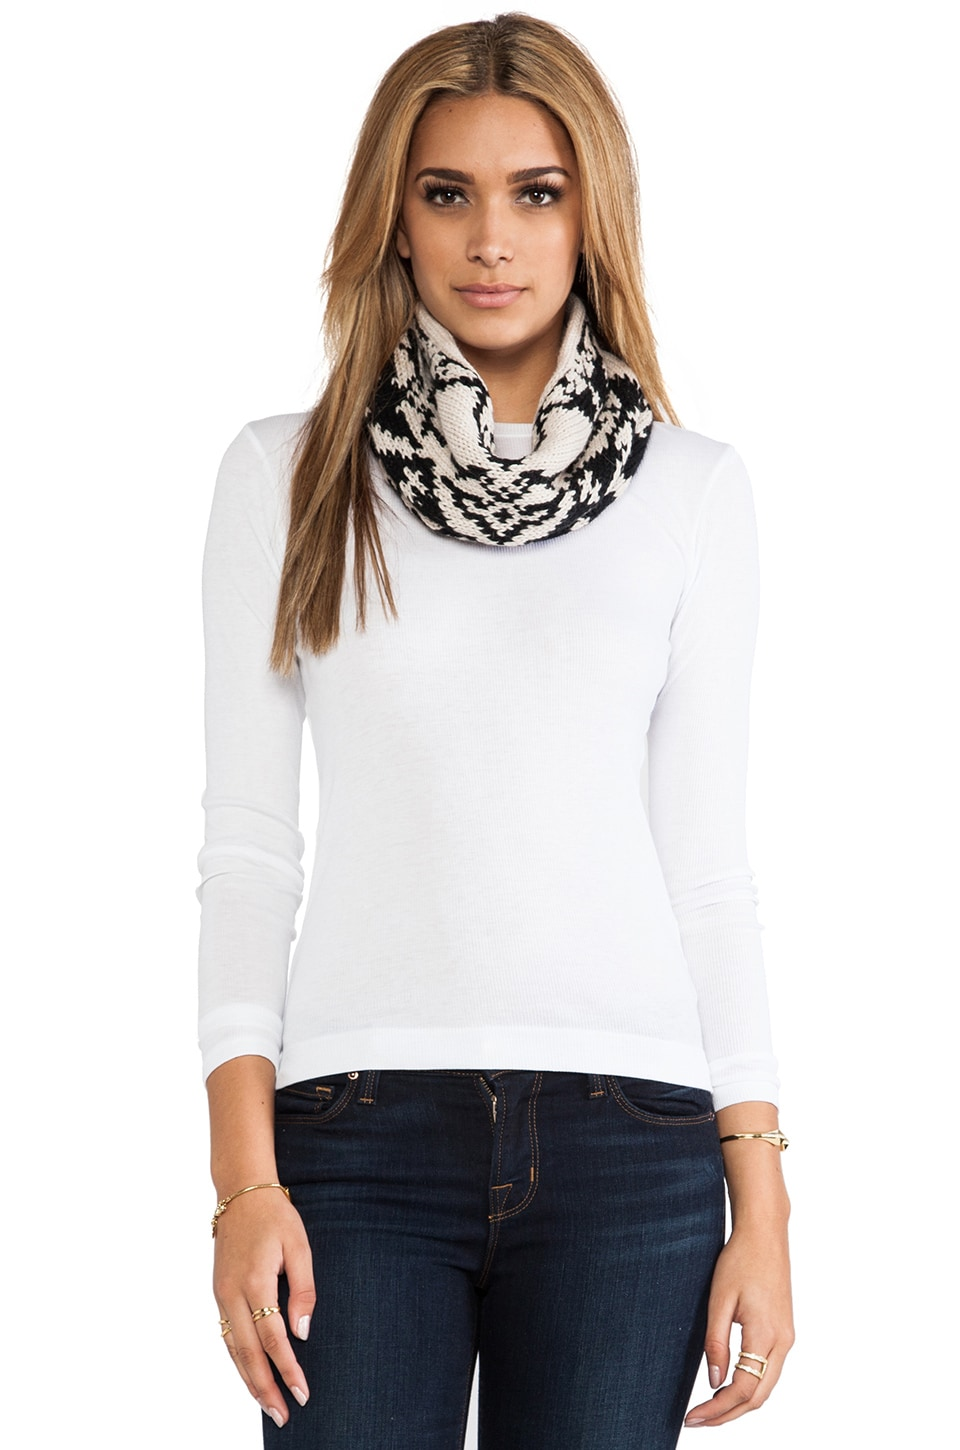 DE NADA Cowl Mountains in Black & Cream